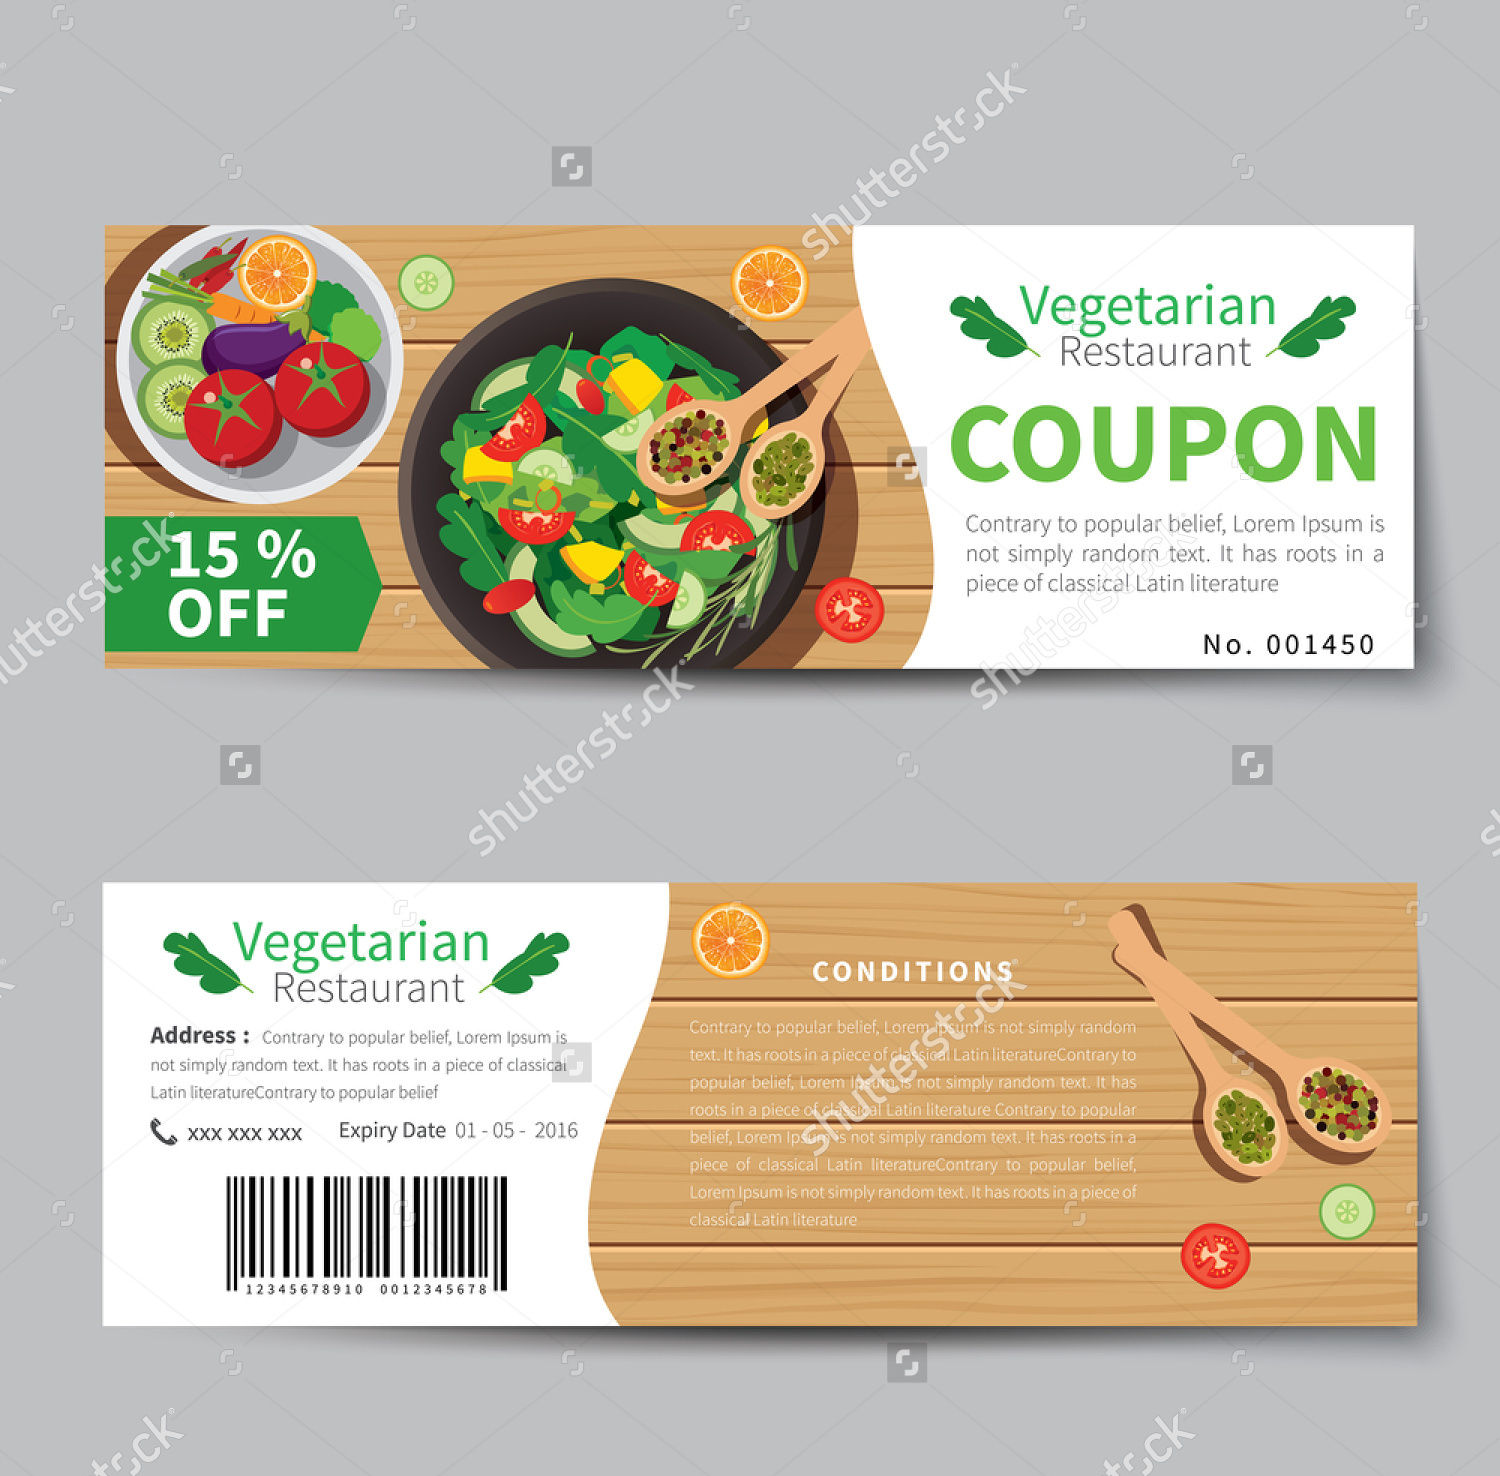 Vegetarian Food Coupon